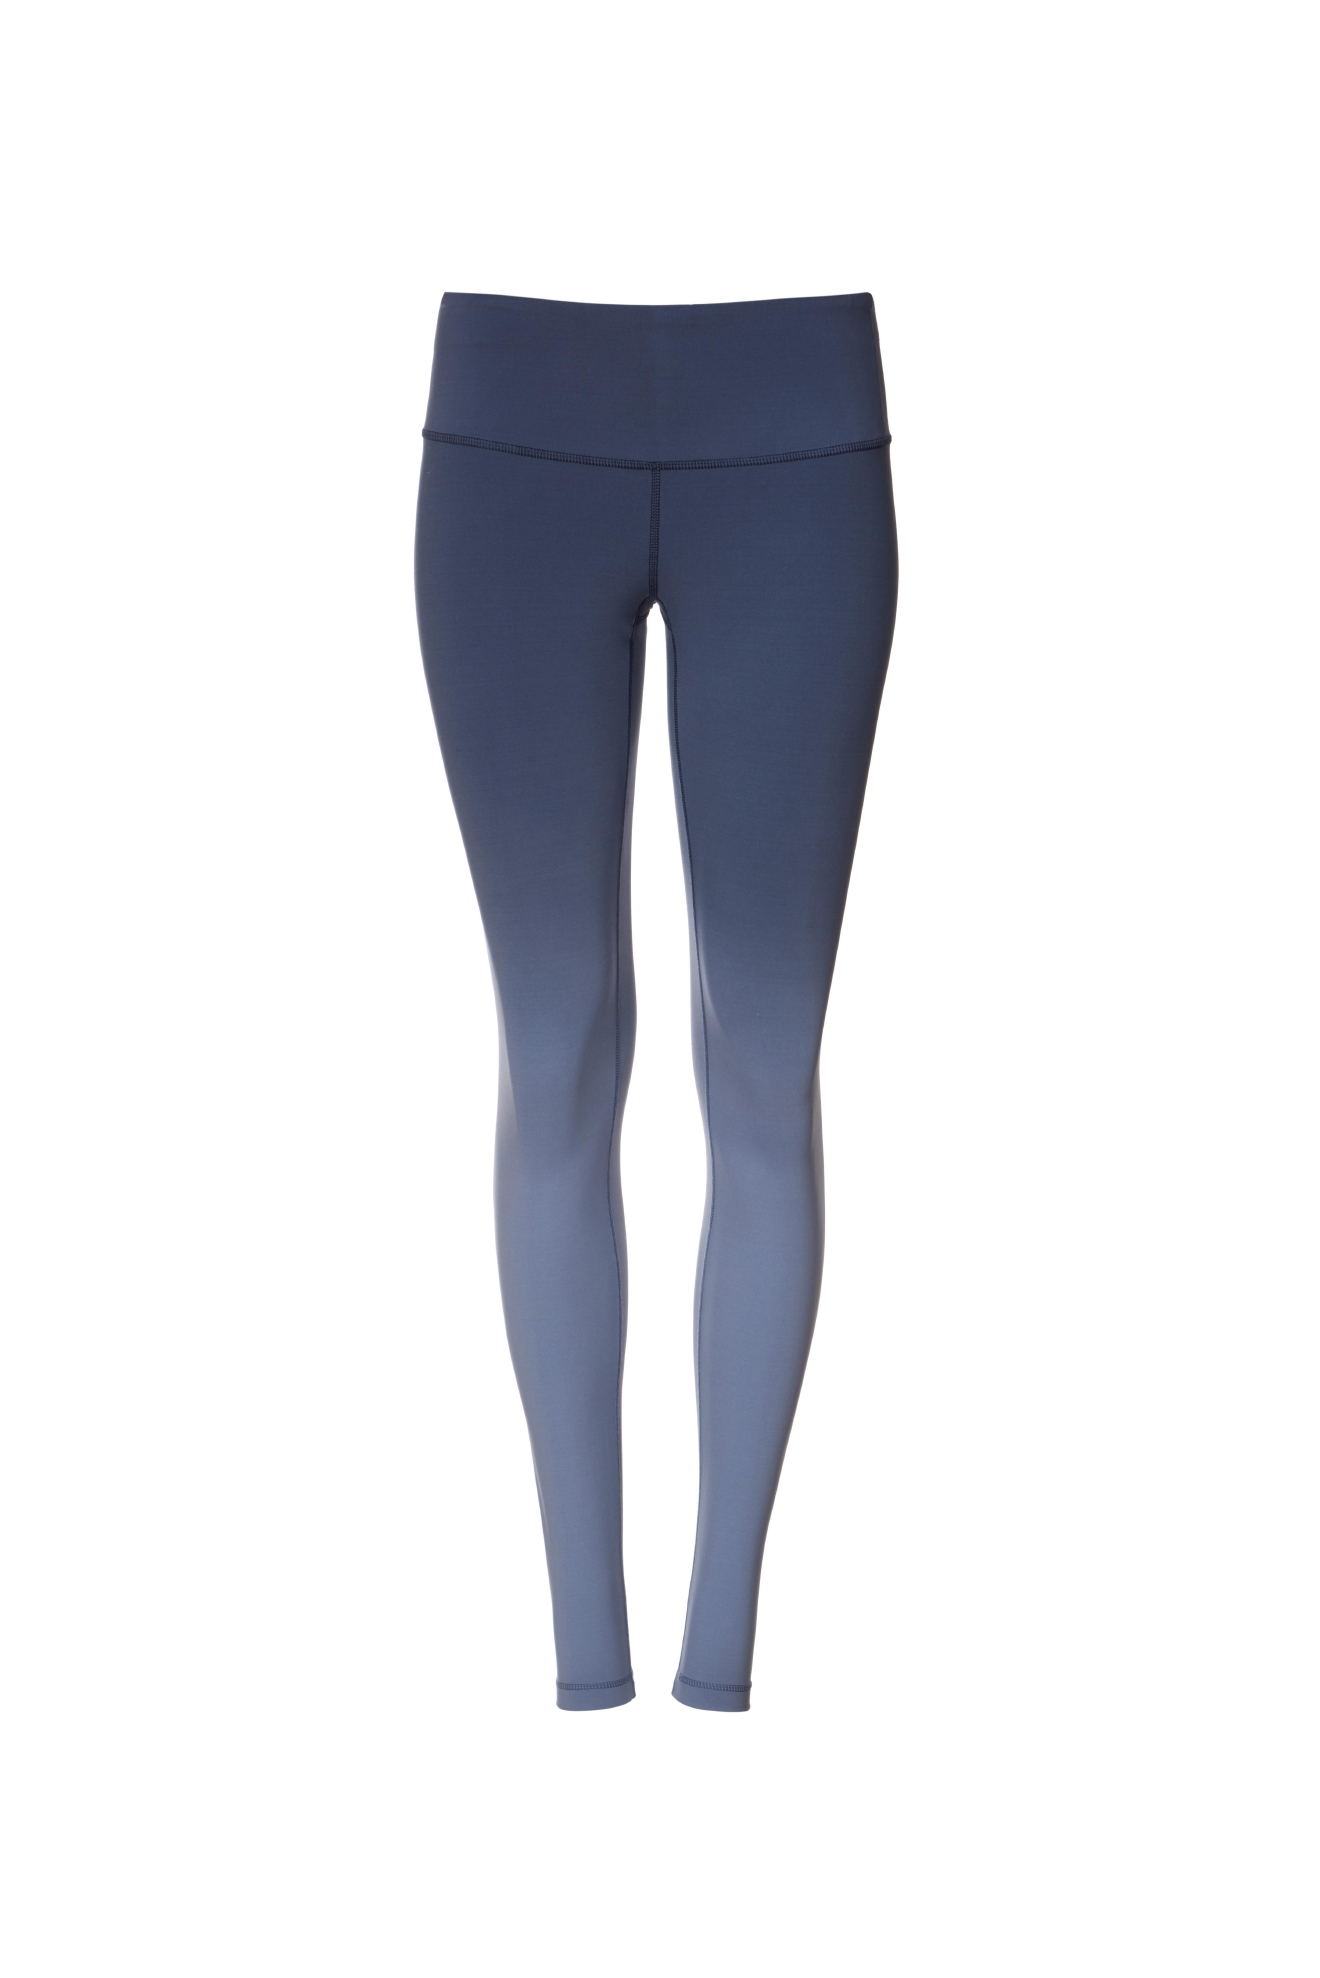 Lululemon Wunder Under Pant Ombre. Available at Lululemon stores and lululemon.com. (Photo: Lululemon)